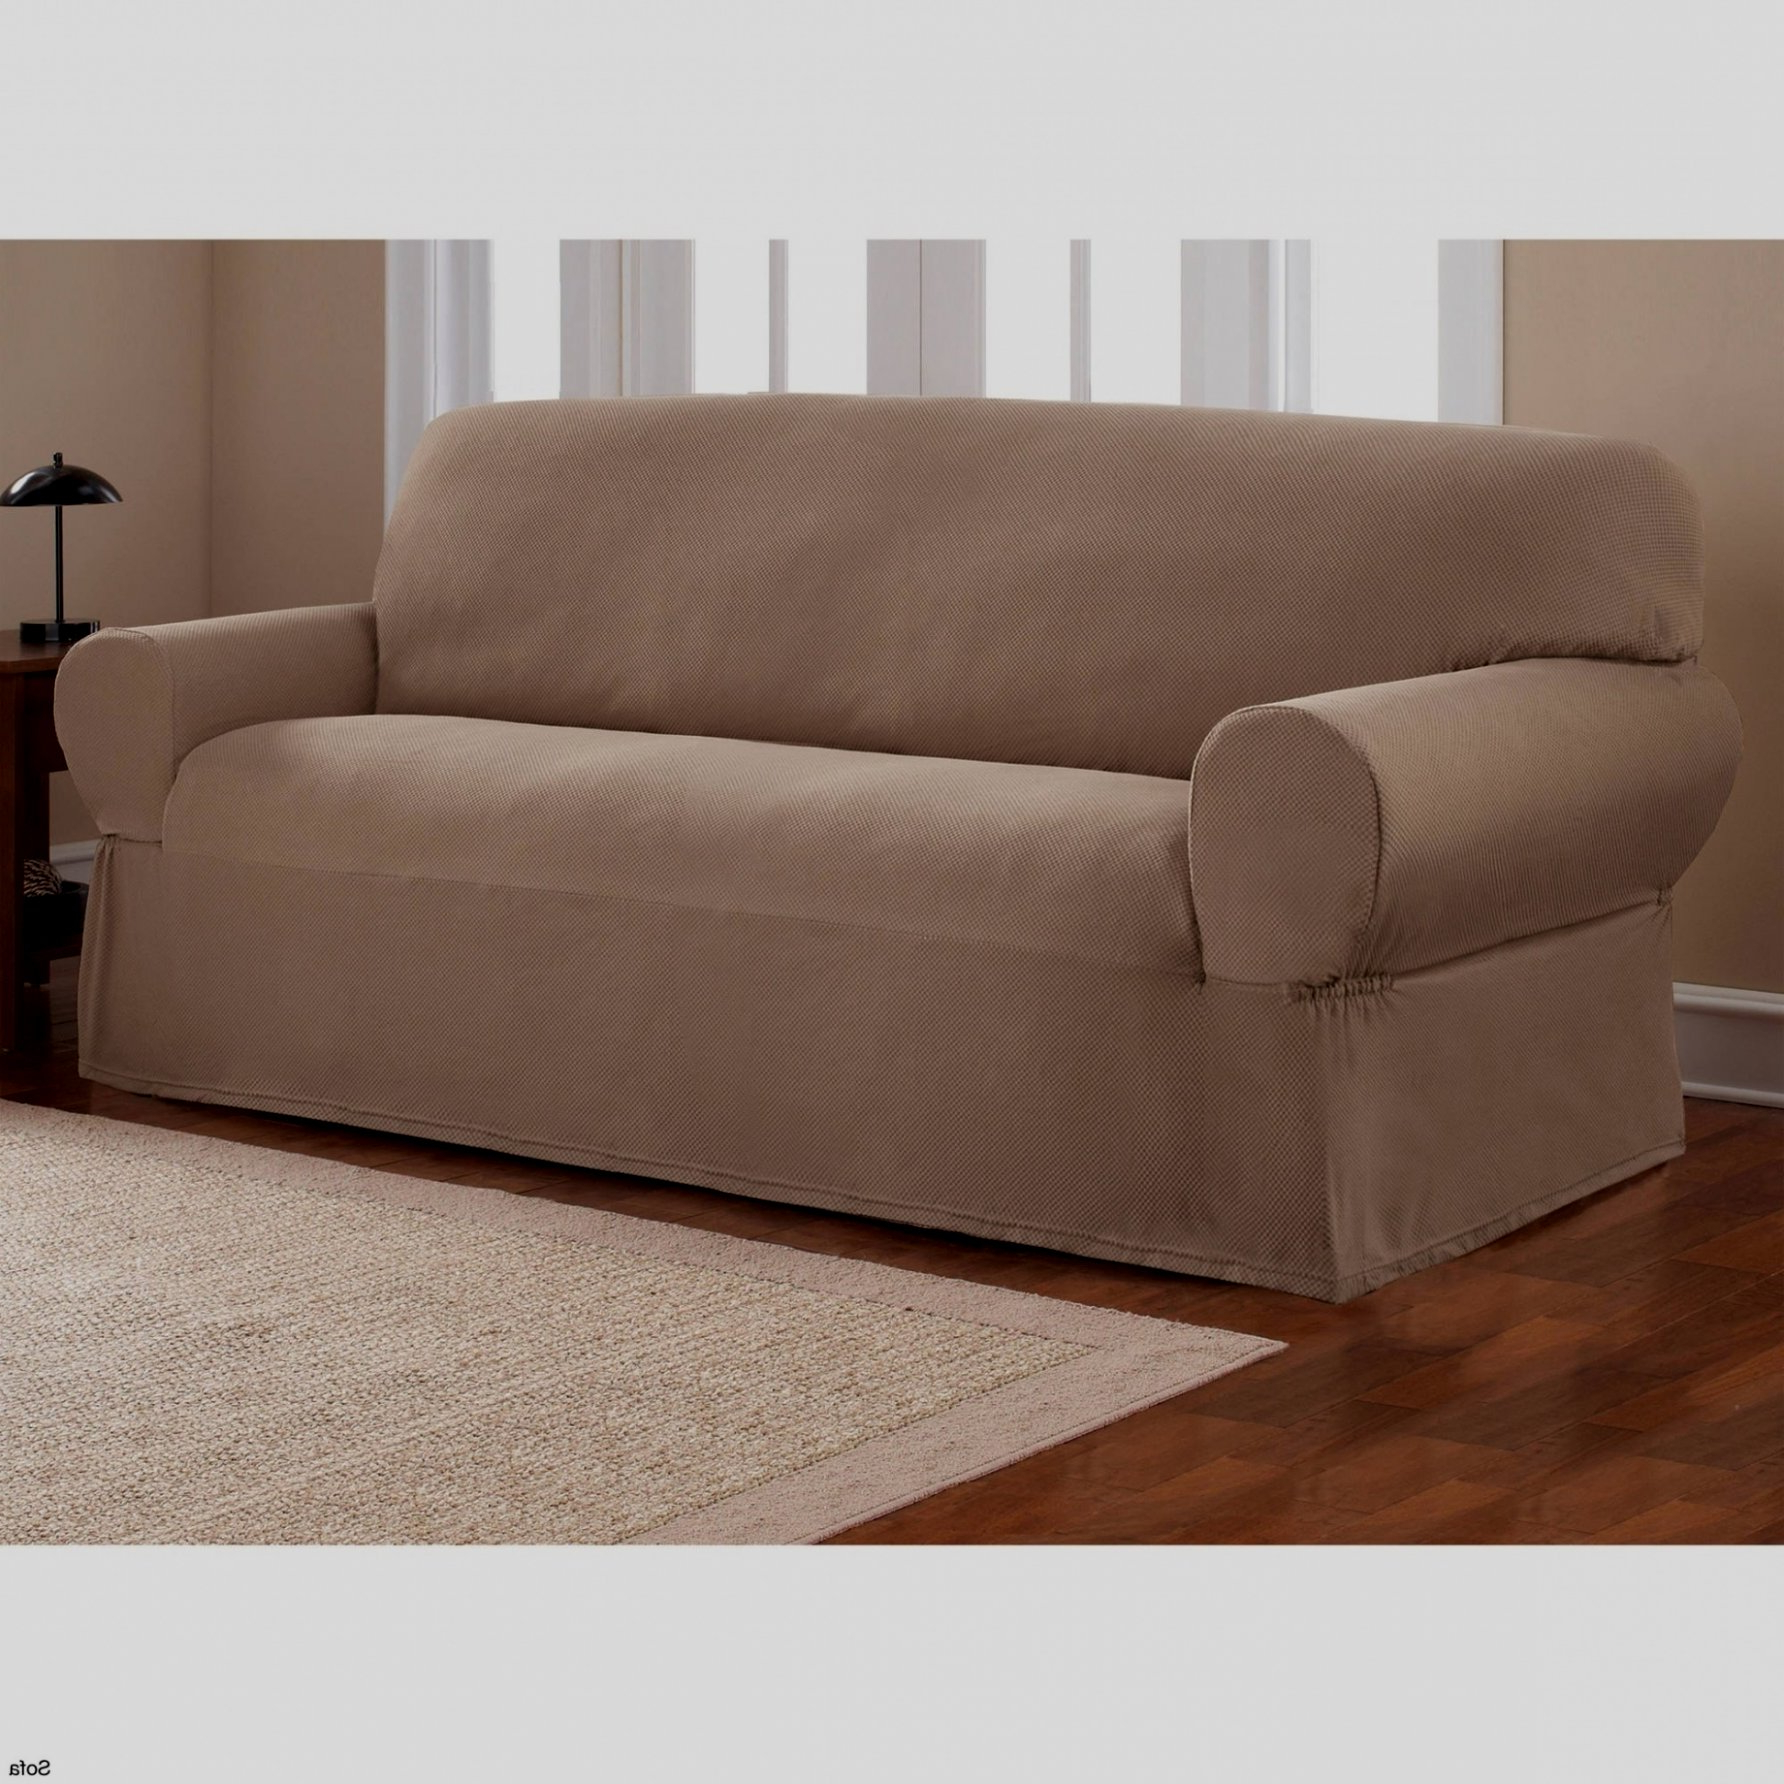 Sofa Fondo Reducido Q5df sofa Fondo Reducido Agradable sofas Para Juveniles Free Best Choice